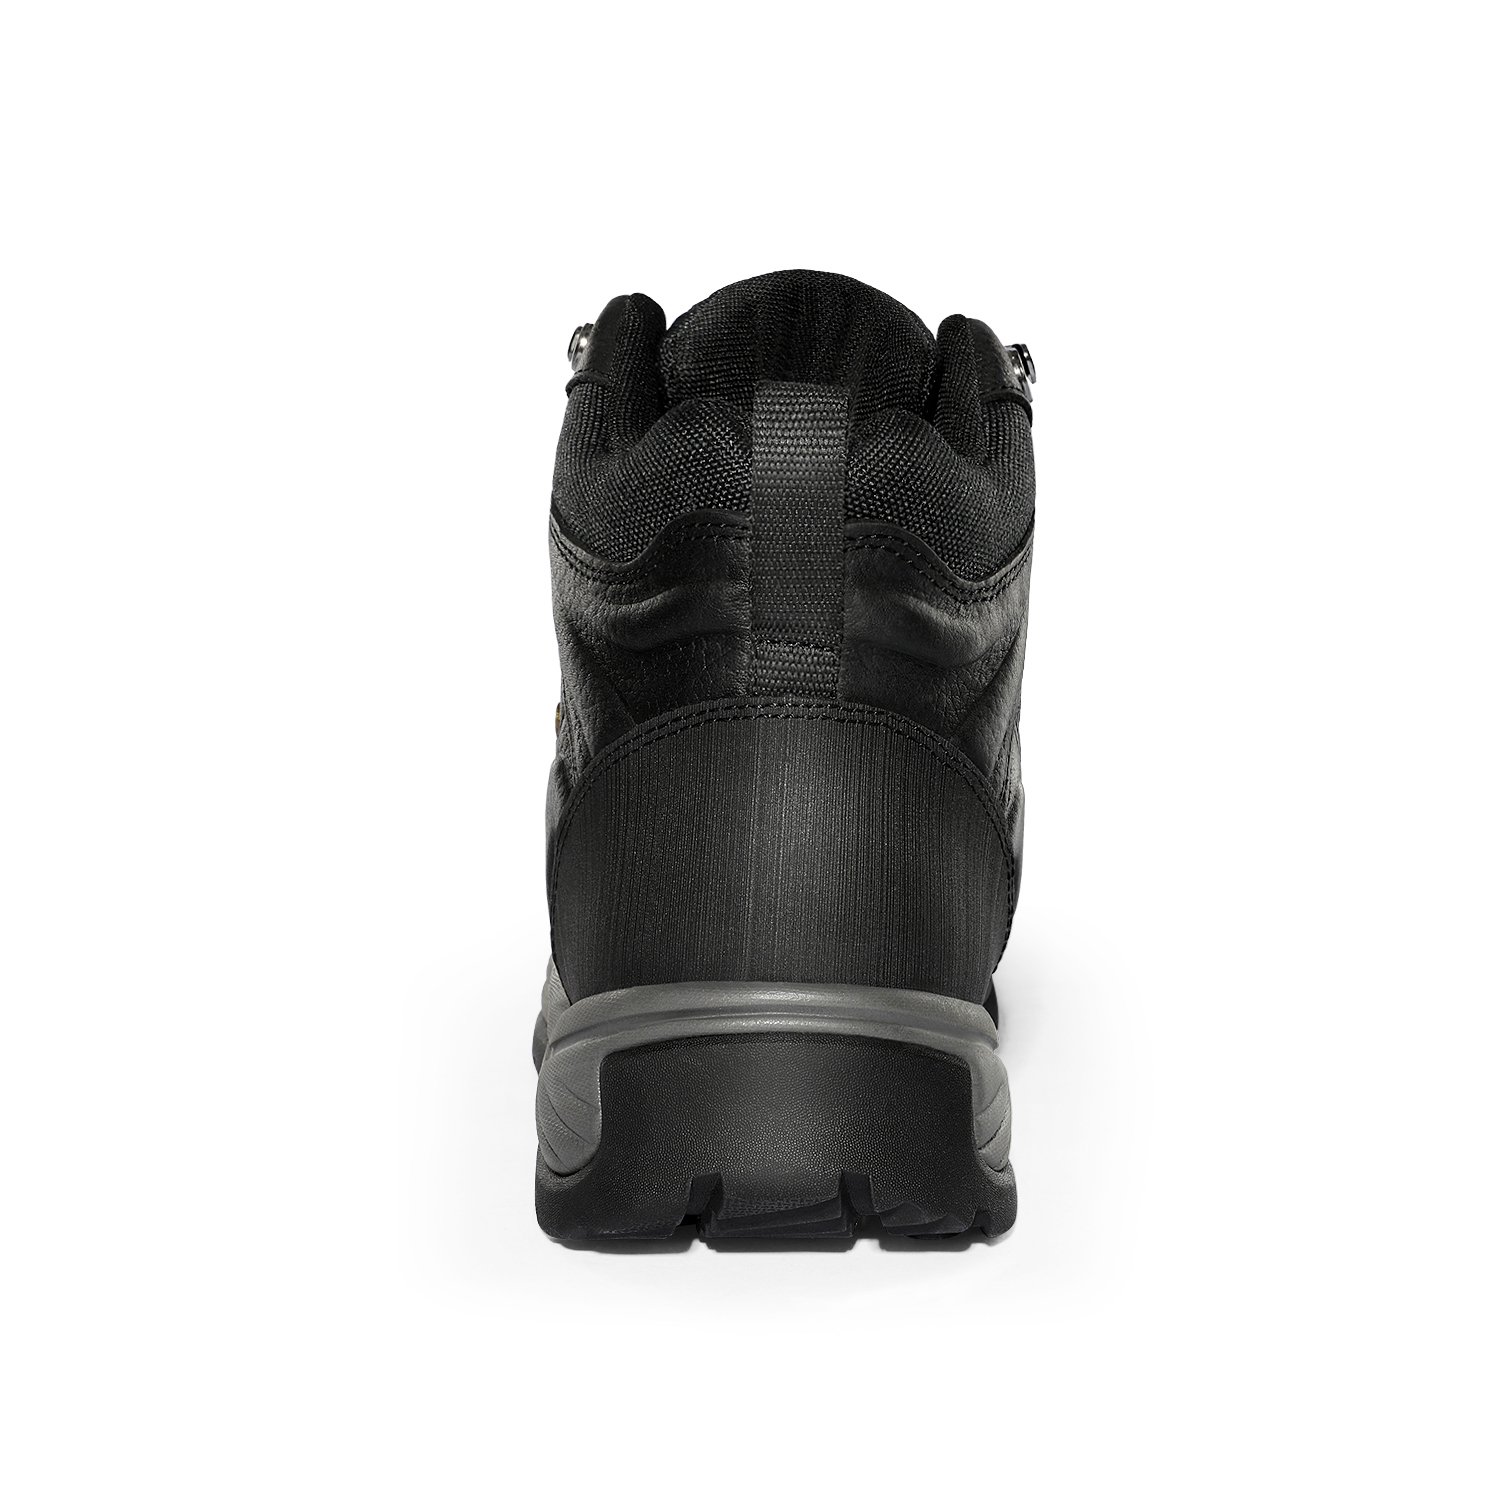 NORTIV-8-Men-039-s-Safety-Shoes-Steel-Toe-Work-Boots-Indestructible-Waterproof-Boots thumbnail 6